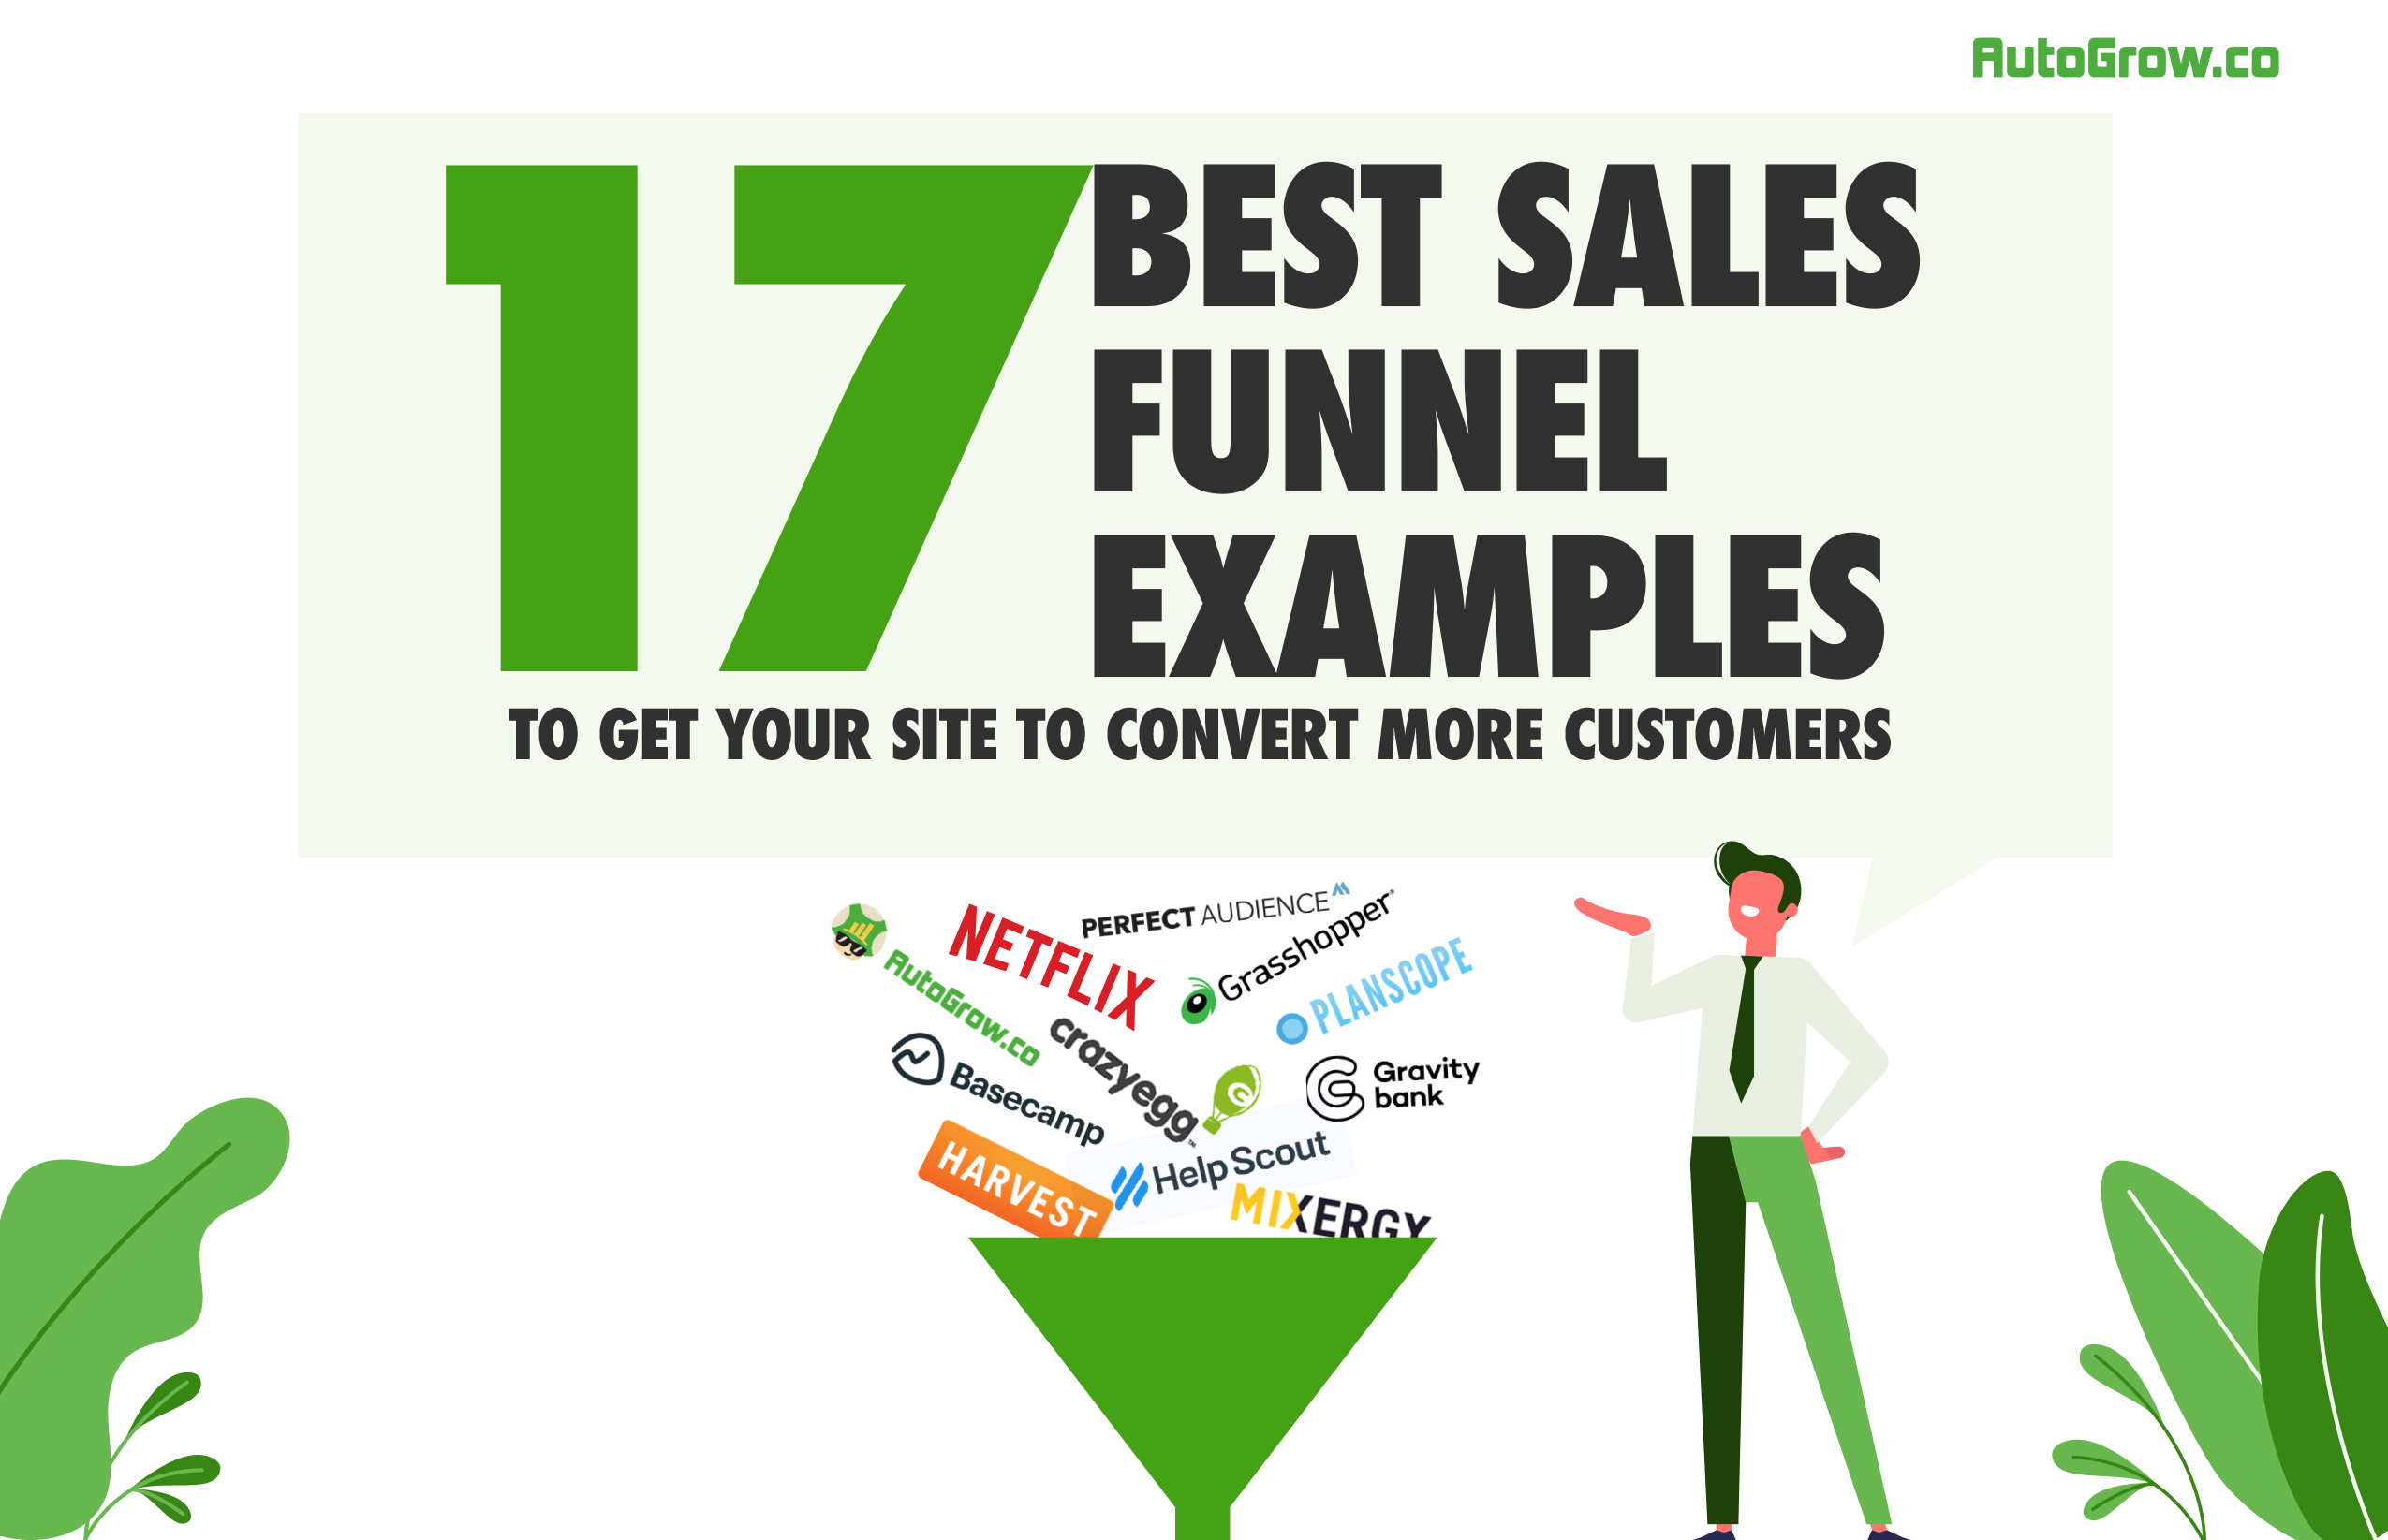 17 Best Sales Funnel Examples In 2020 To Help You Convert More Customers Autogrow